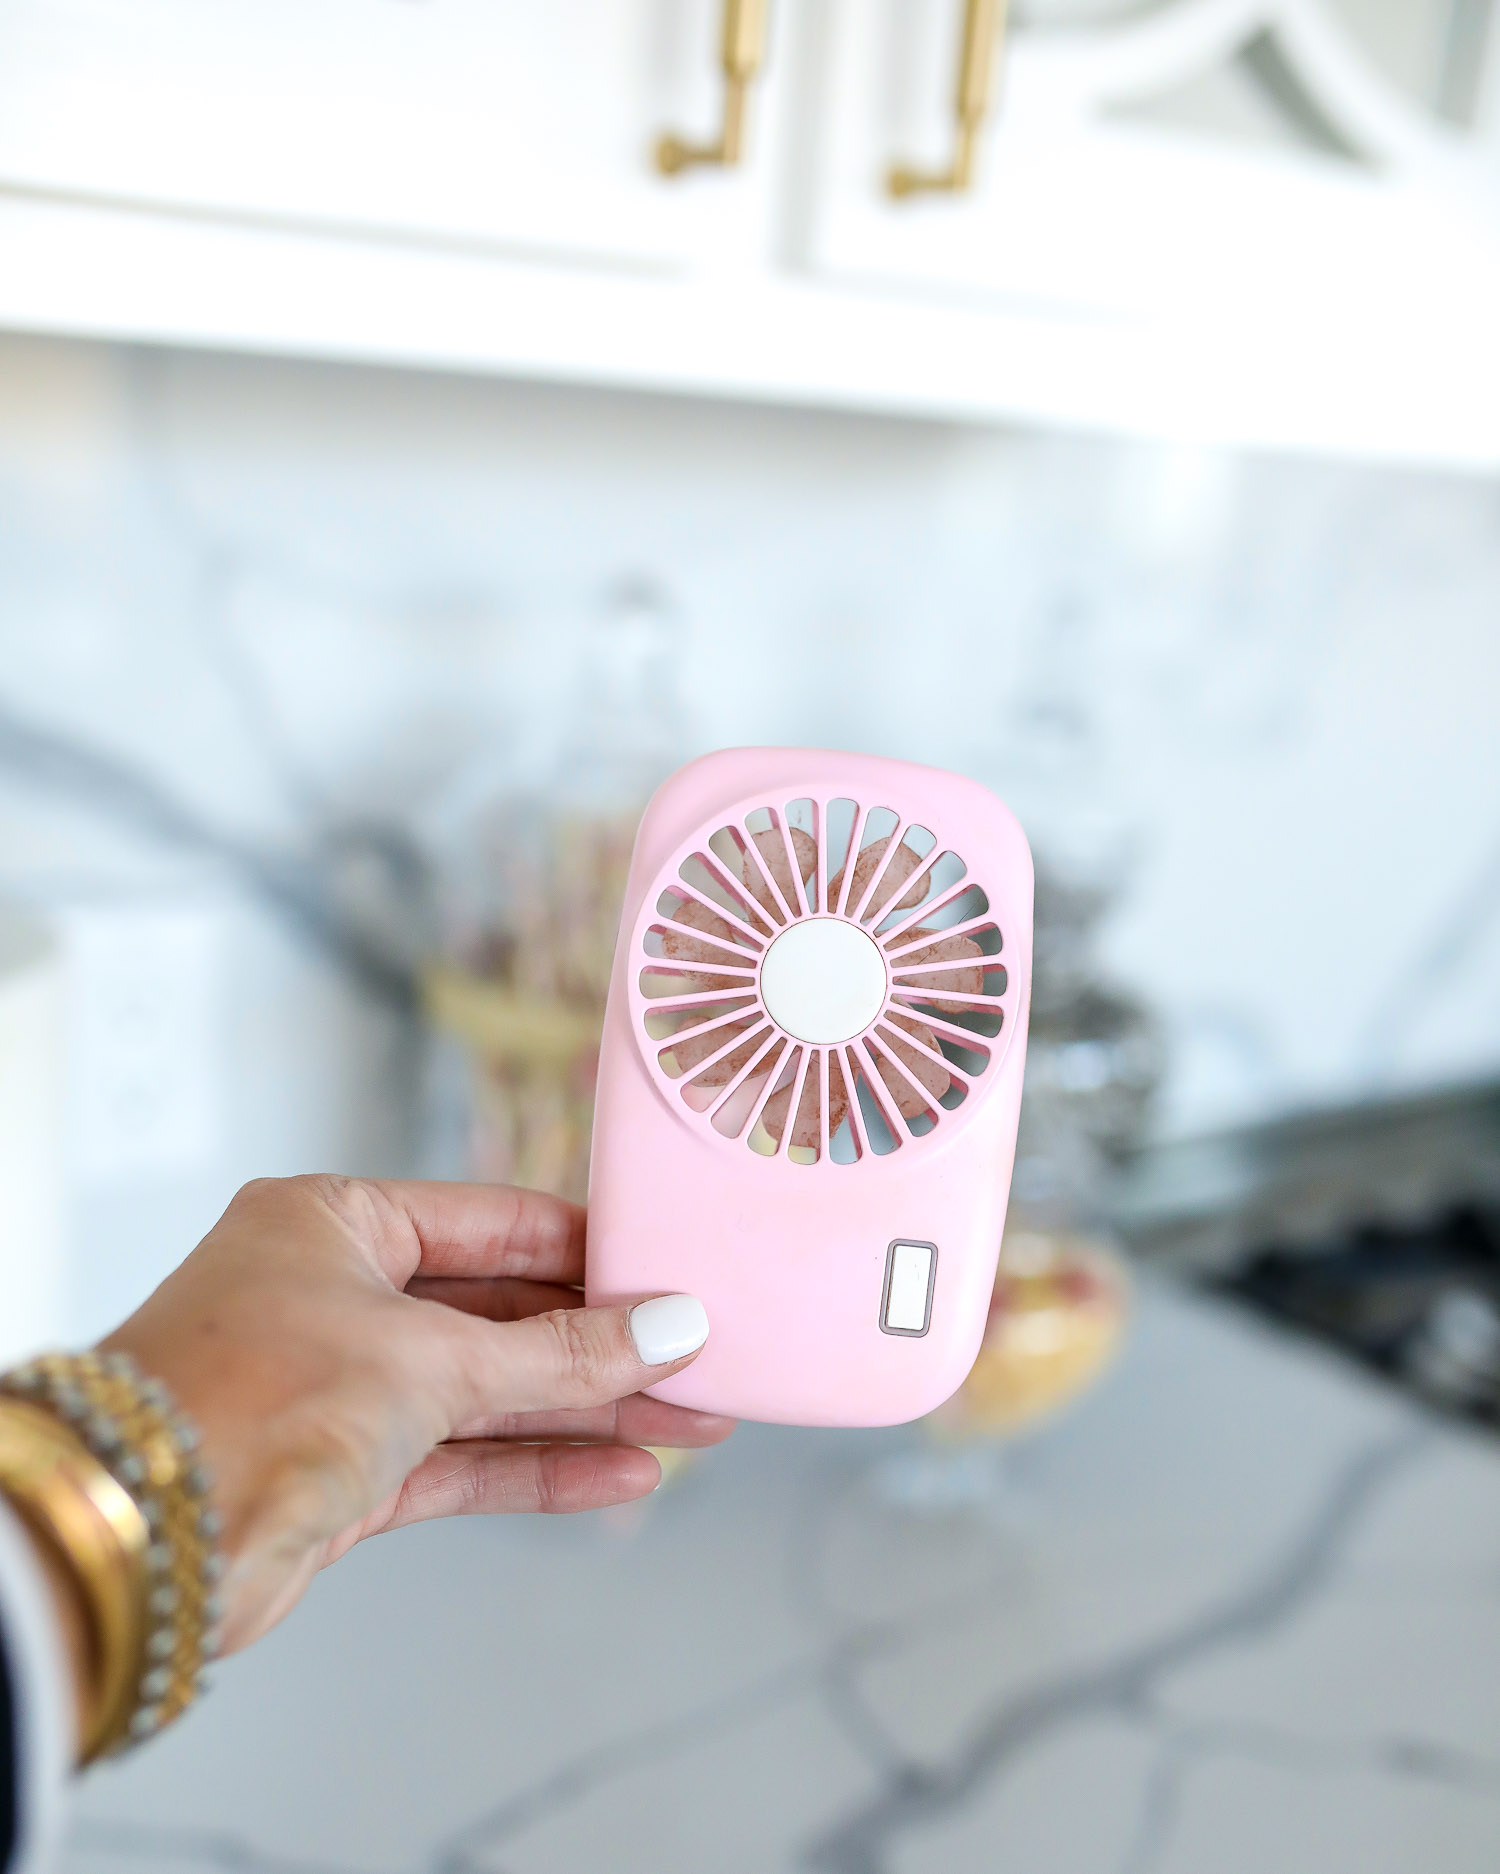 travel sized fan Emily Gemma, swig marble cup insulated, top amazon must haves, amazon best buys 2020, emily gemma, amazon prime must haves blog post | Amazon Prime Favorites by popular US life and style blog, The Sweetest Thing: image of a Amazon Prime pink handheld fan.